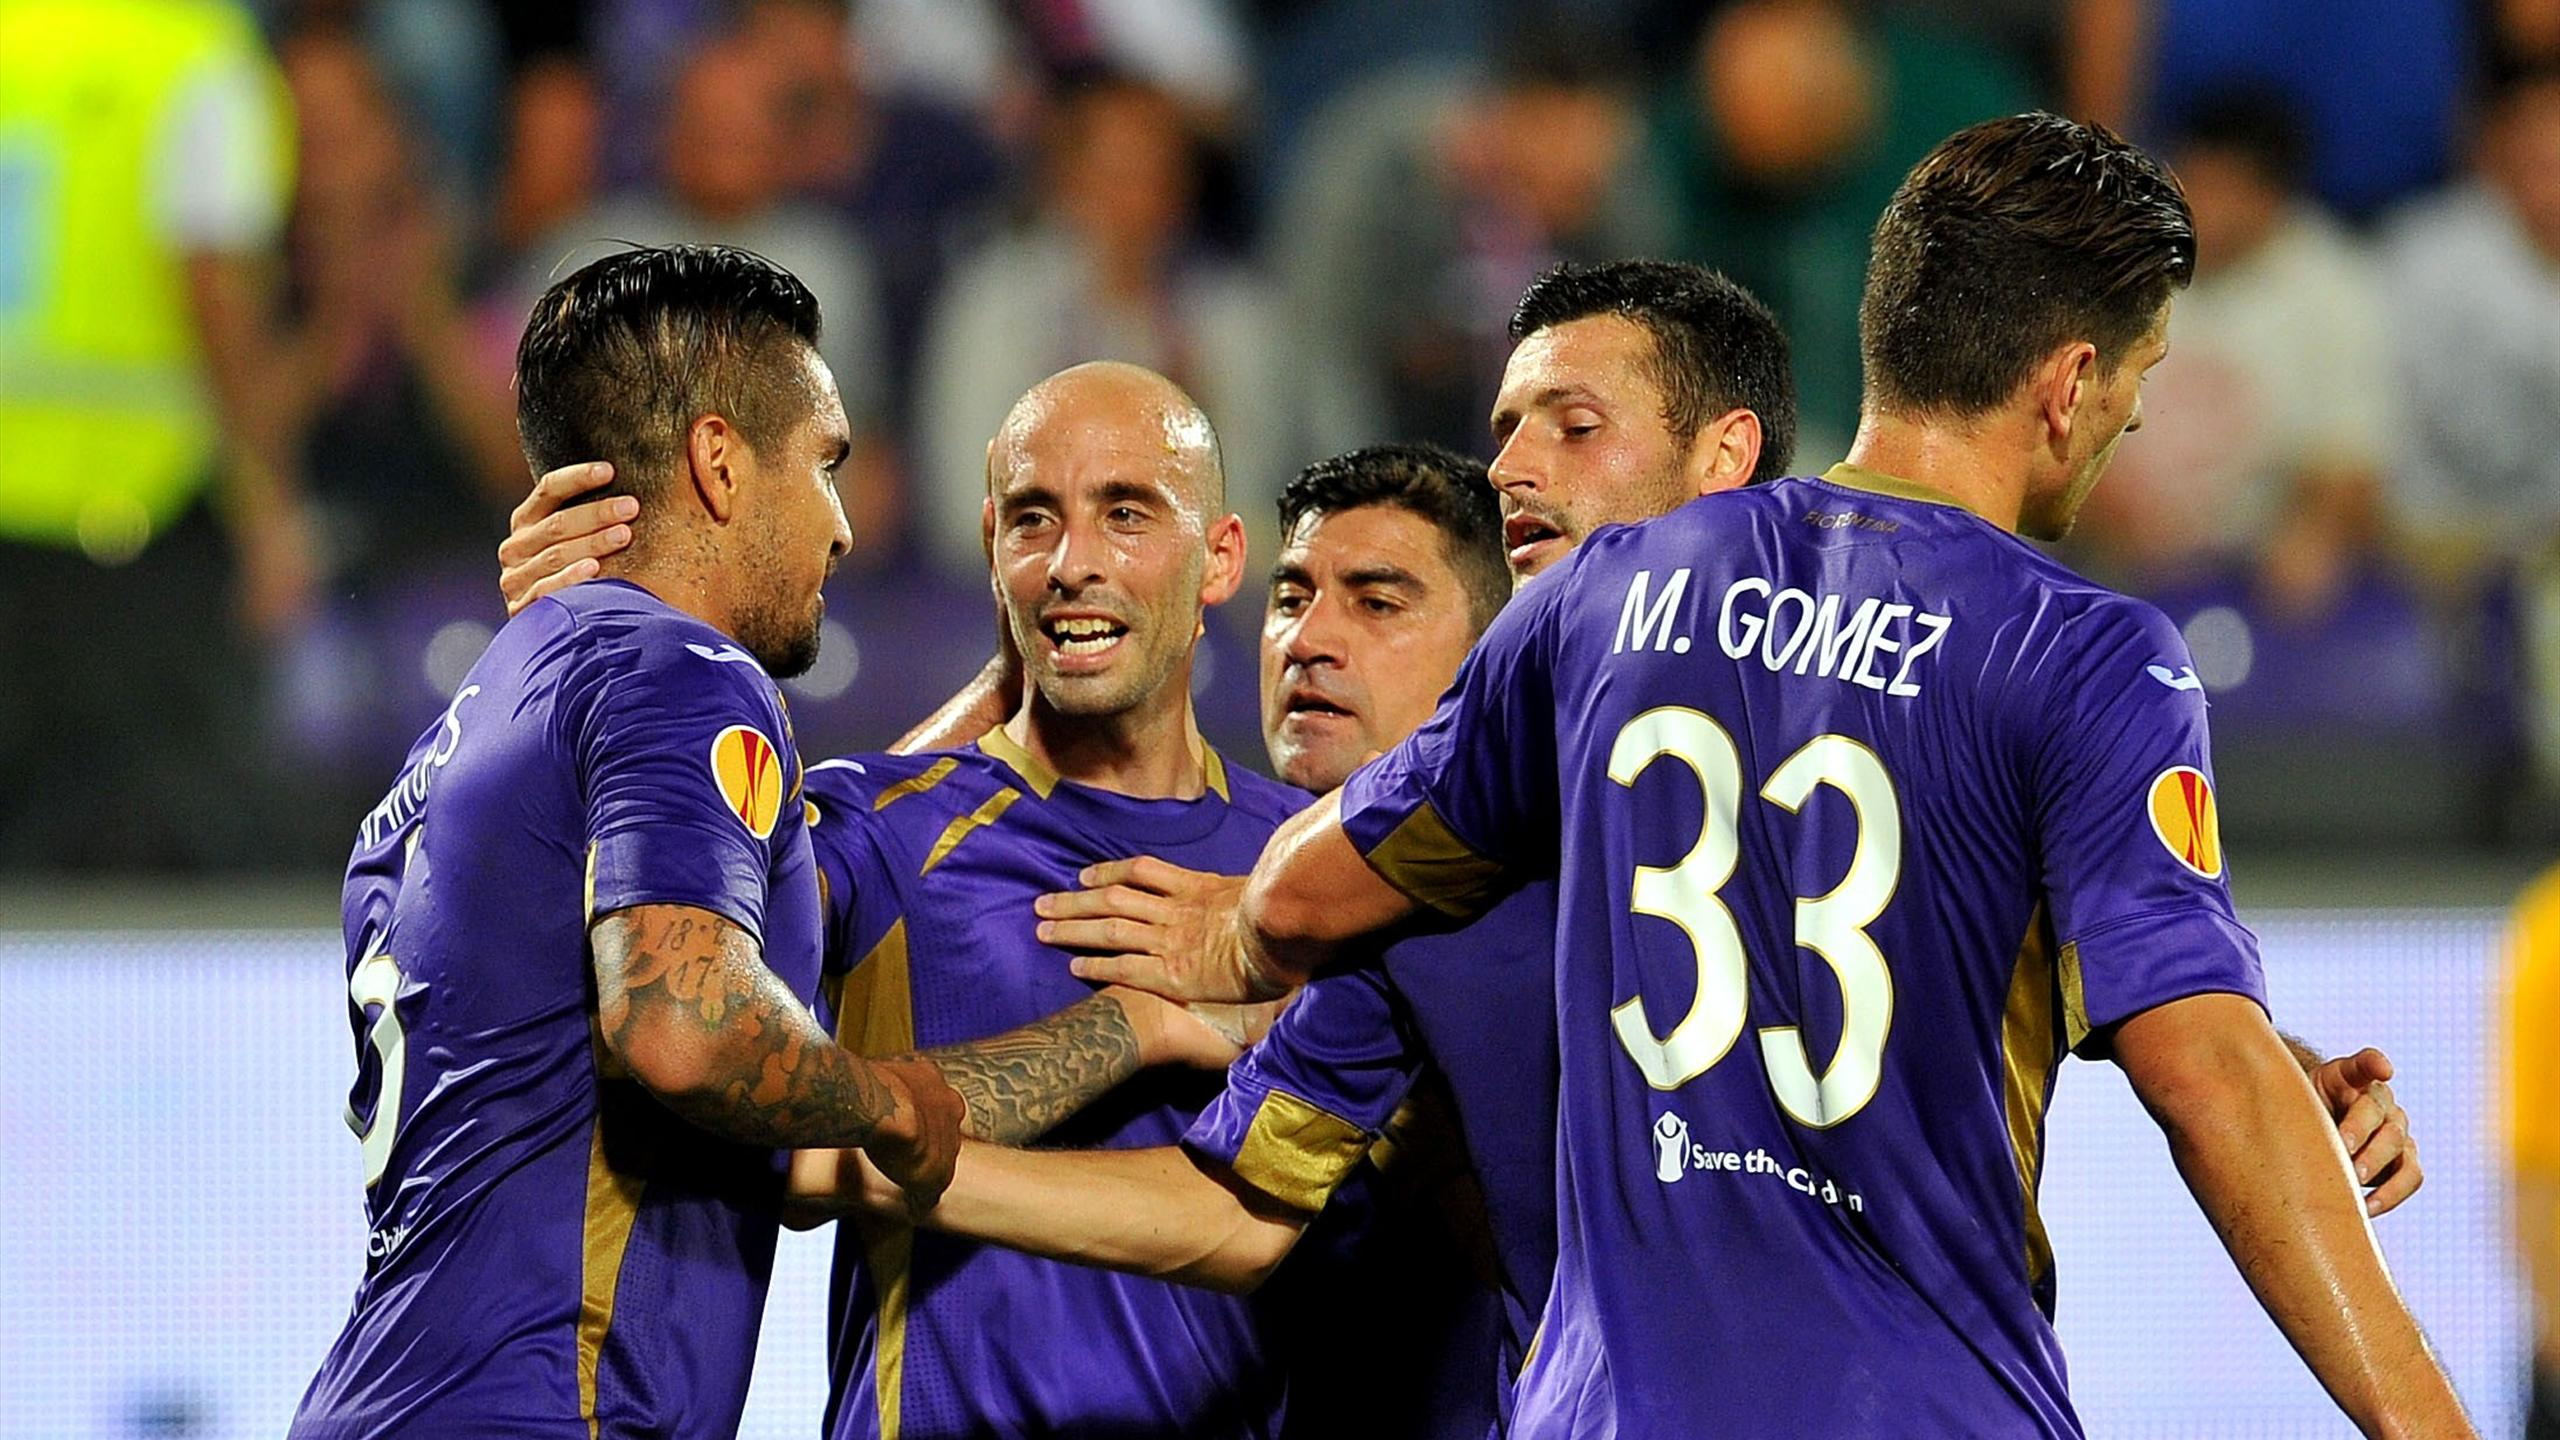 Video: Fiorentina vs Guingamp